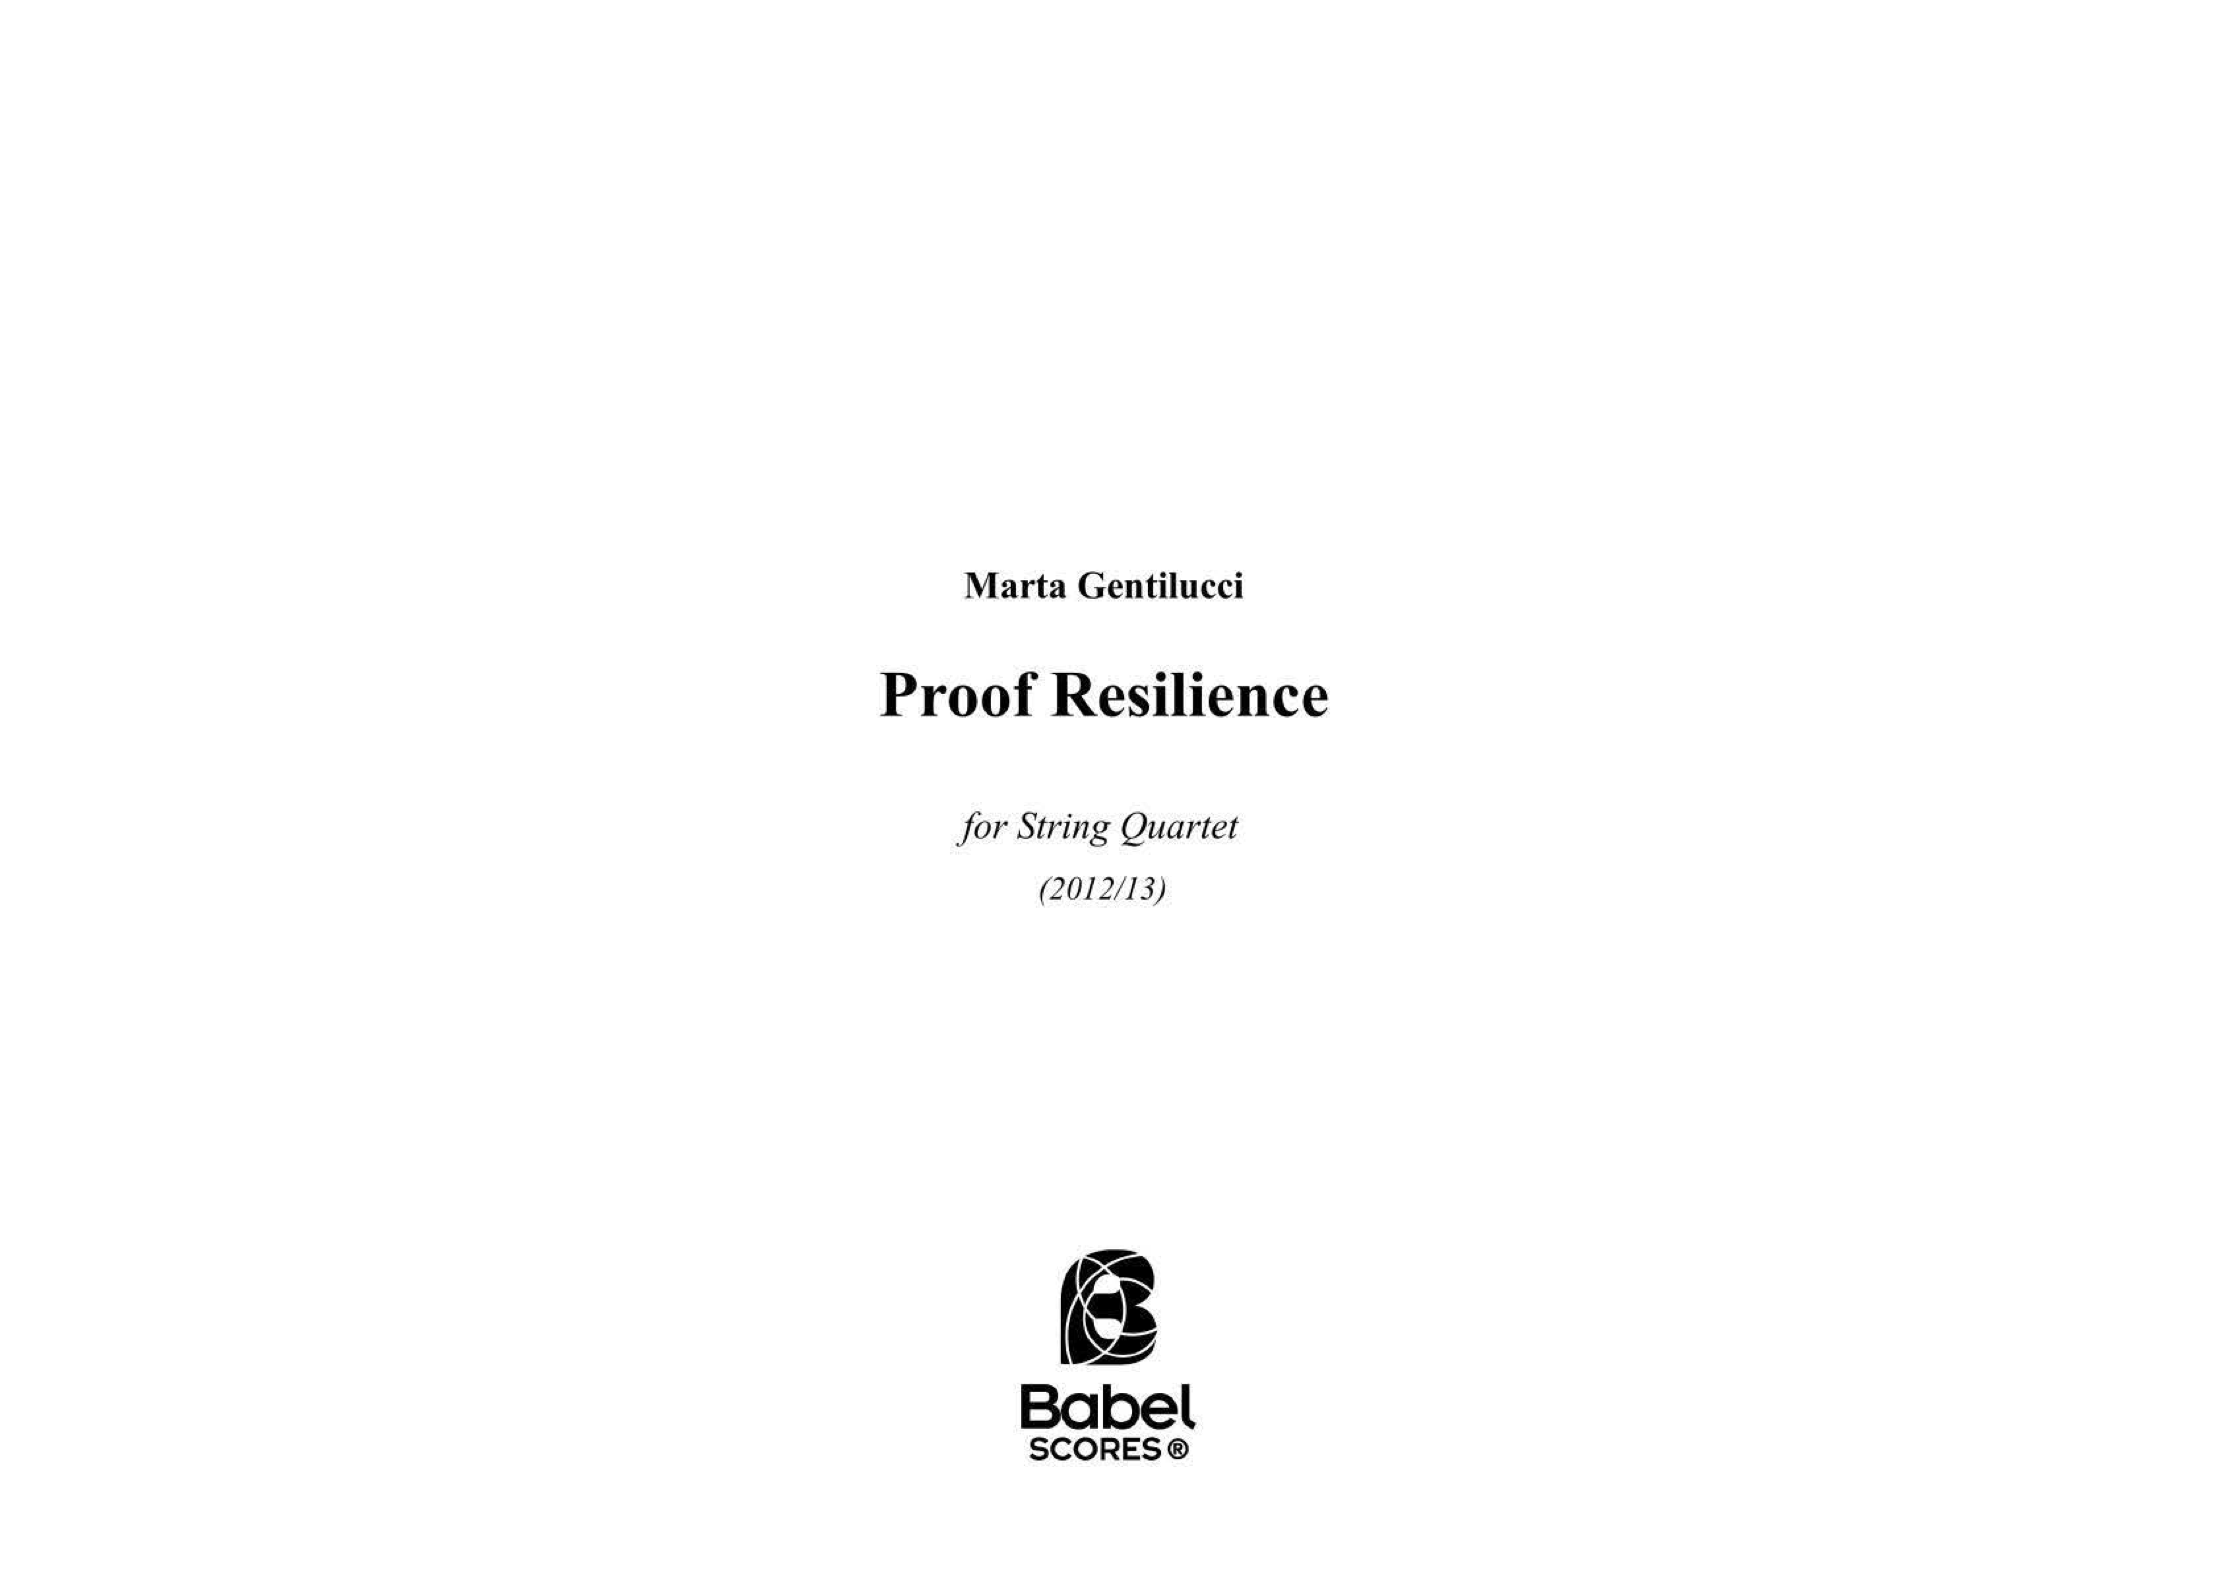 ProofResilience A4 z